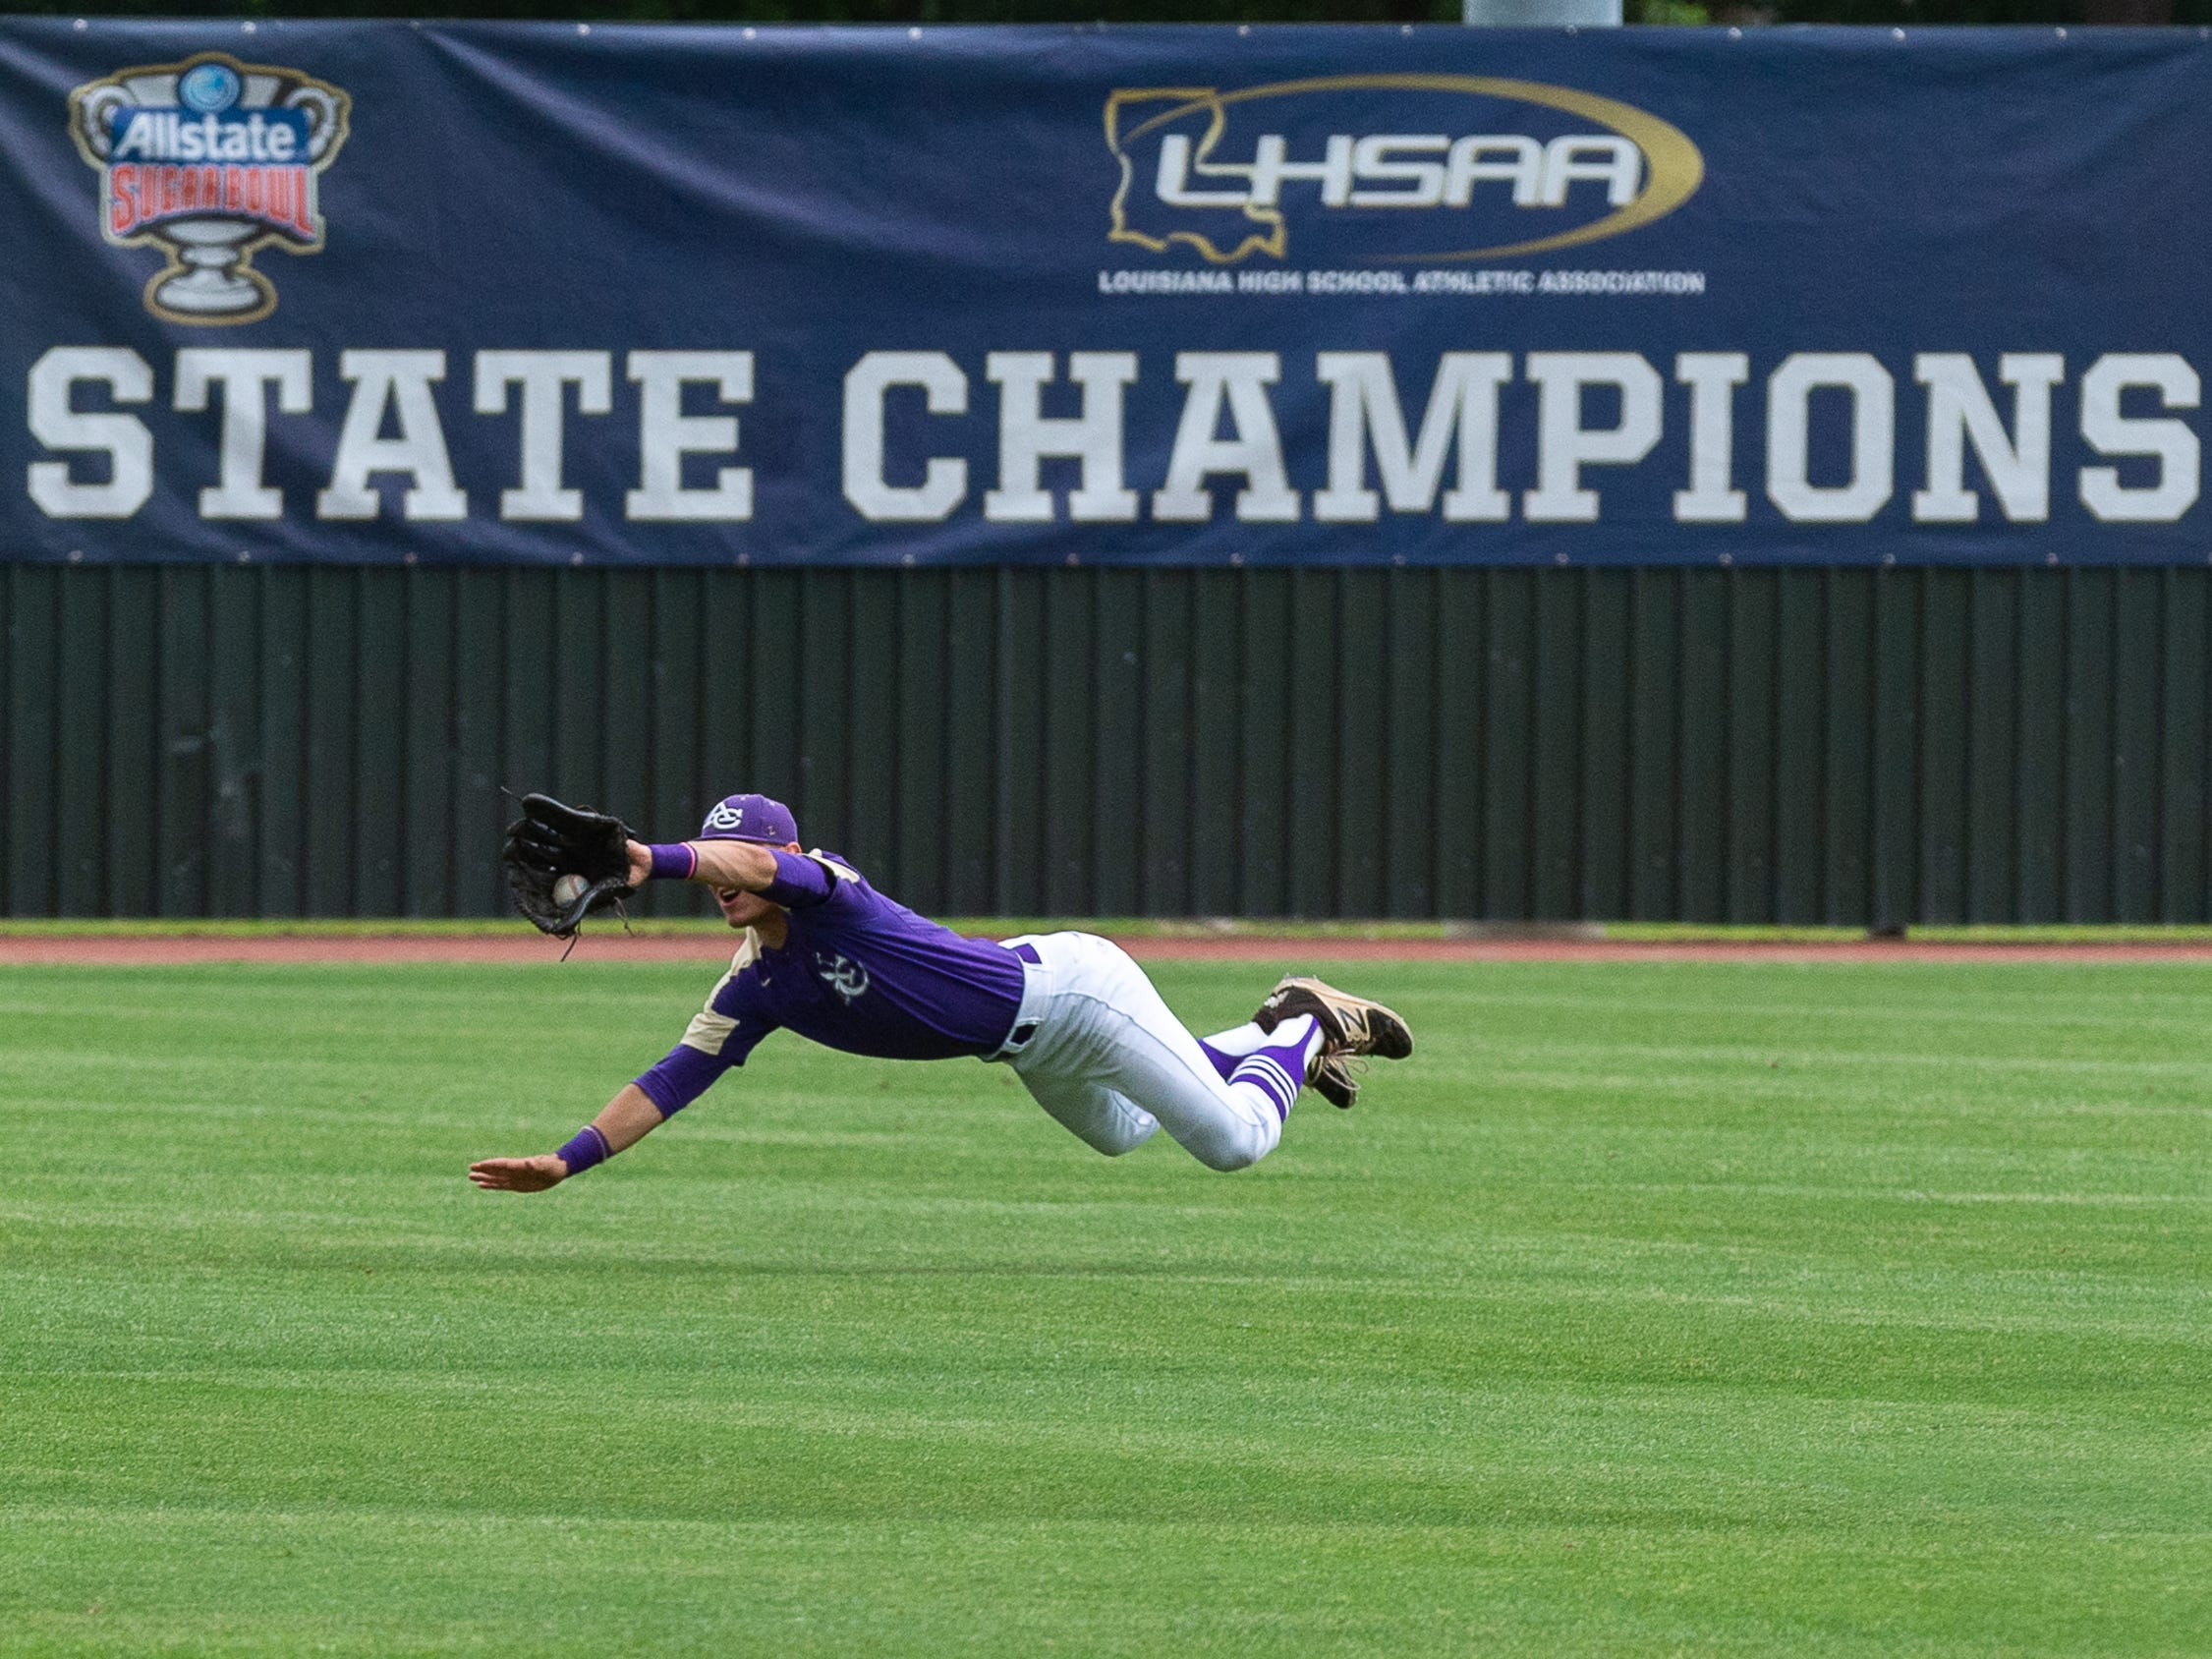 Opelousas Catholic takes on Ascension Catholic in the Div IV Semi Final game of the LHSAA State Baseball Championship. Wednesday, May 8, 2019.